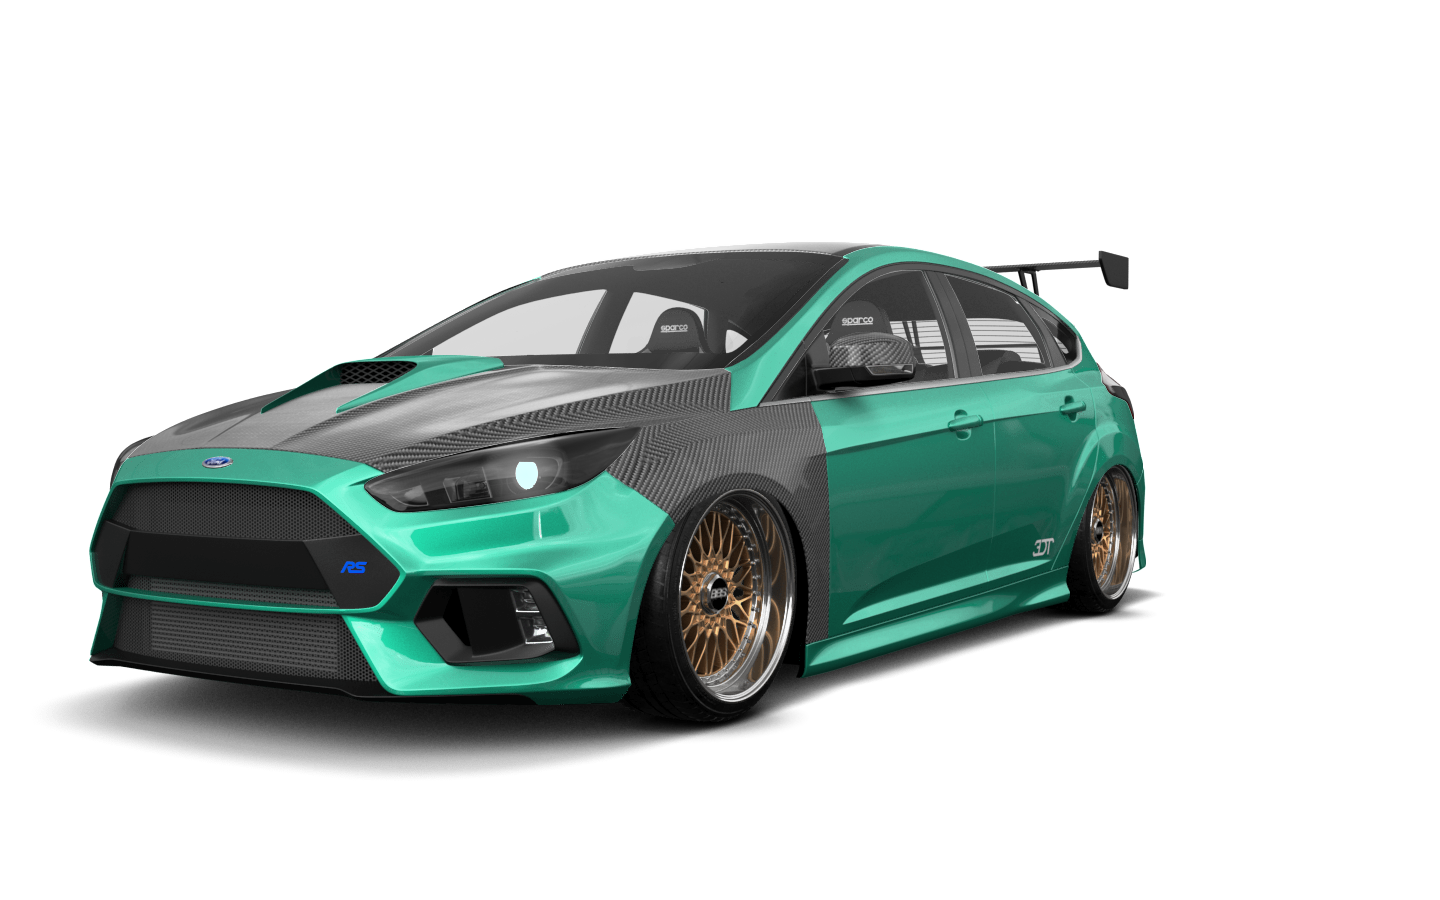 Ford Focus Hatchback 2015 tuning